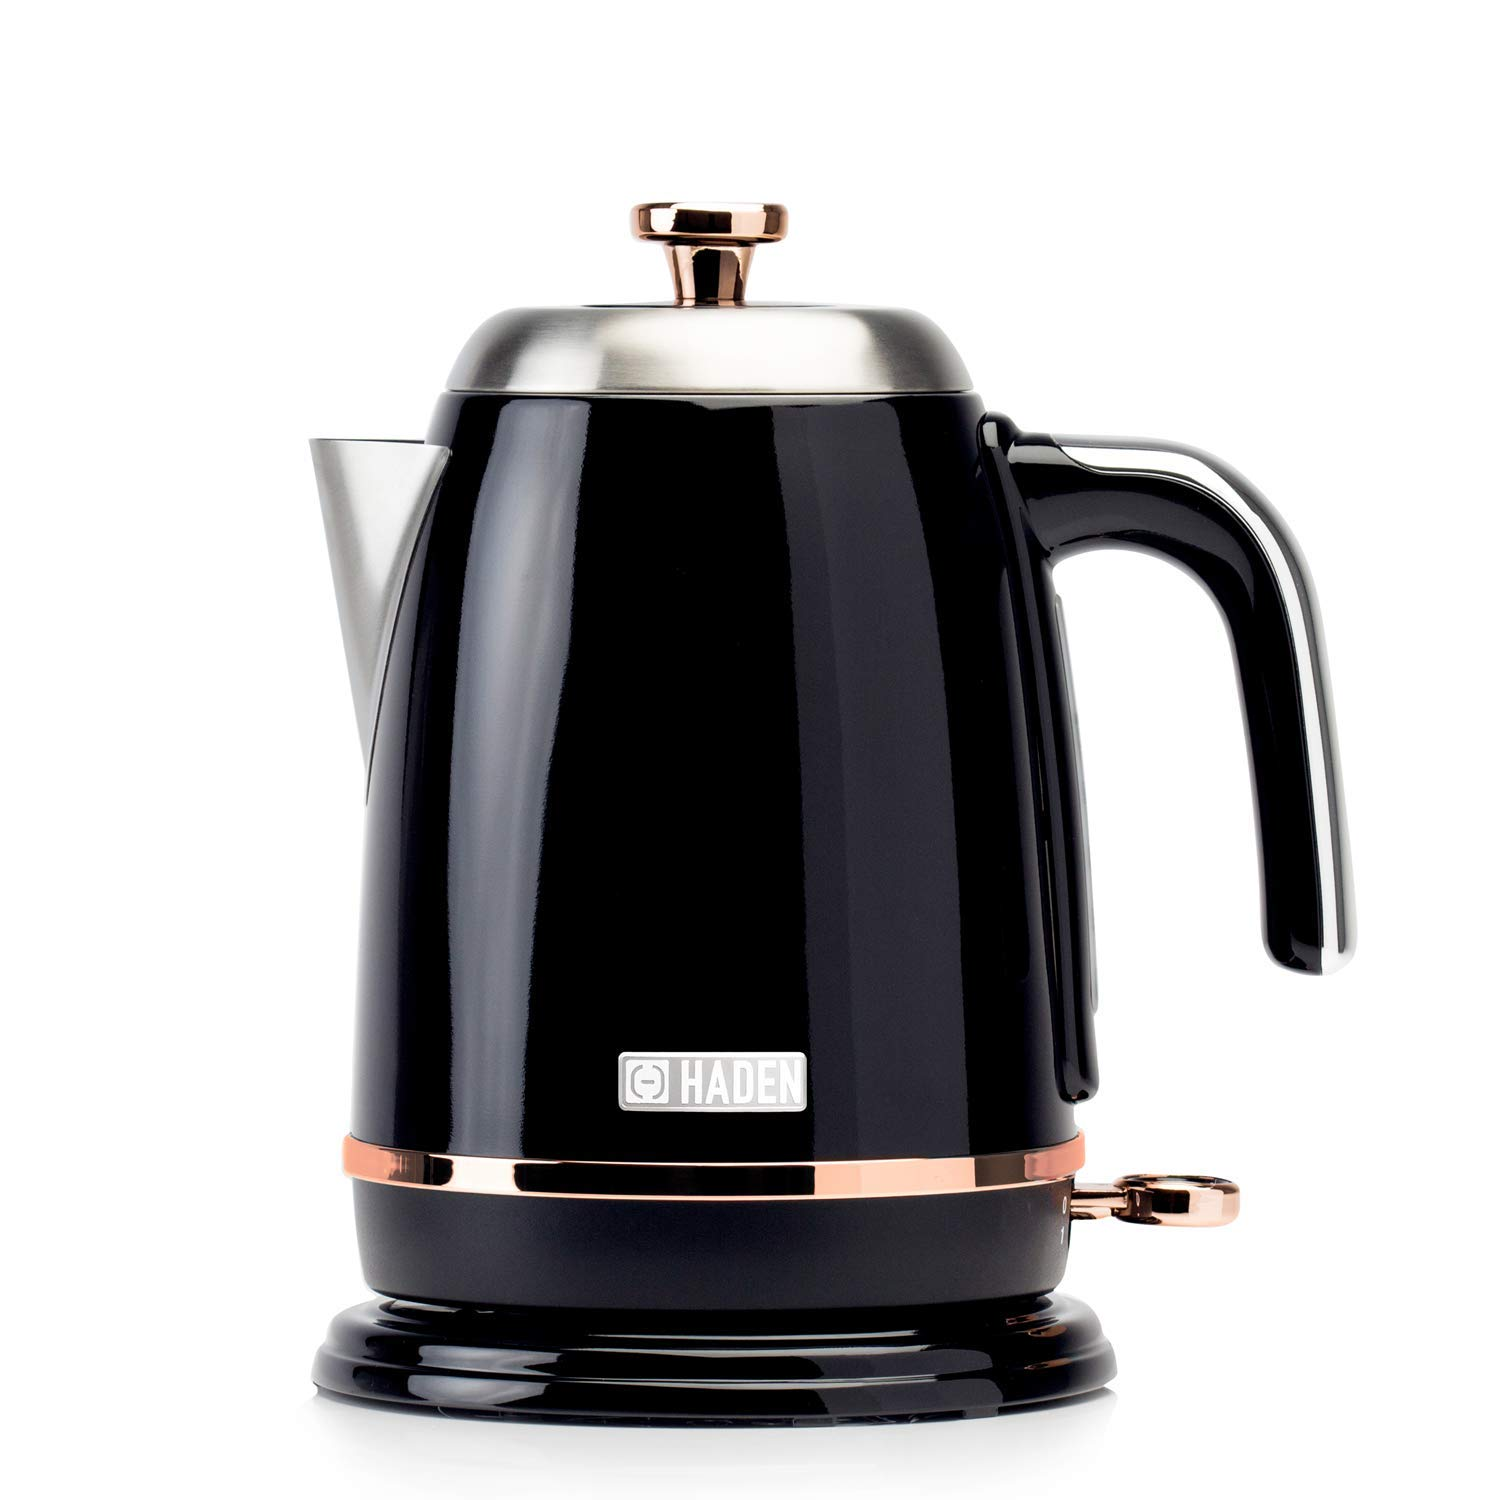 Haden Salcombe Kettle Black & Copper 1.7L